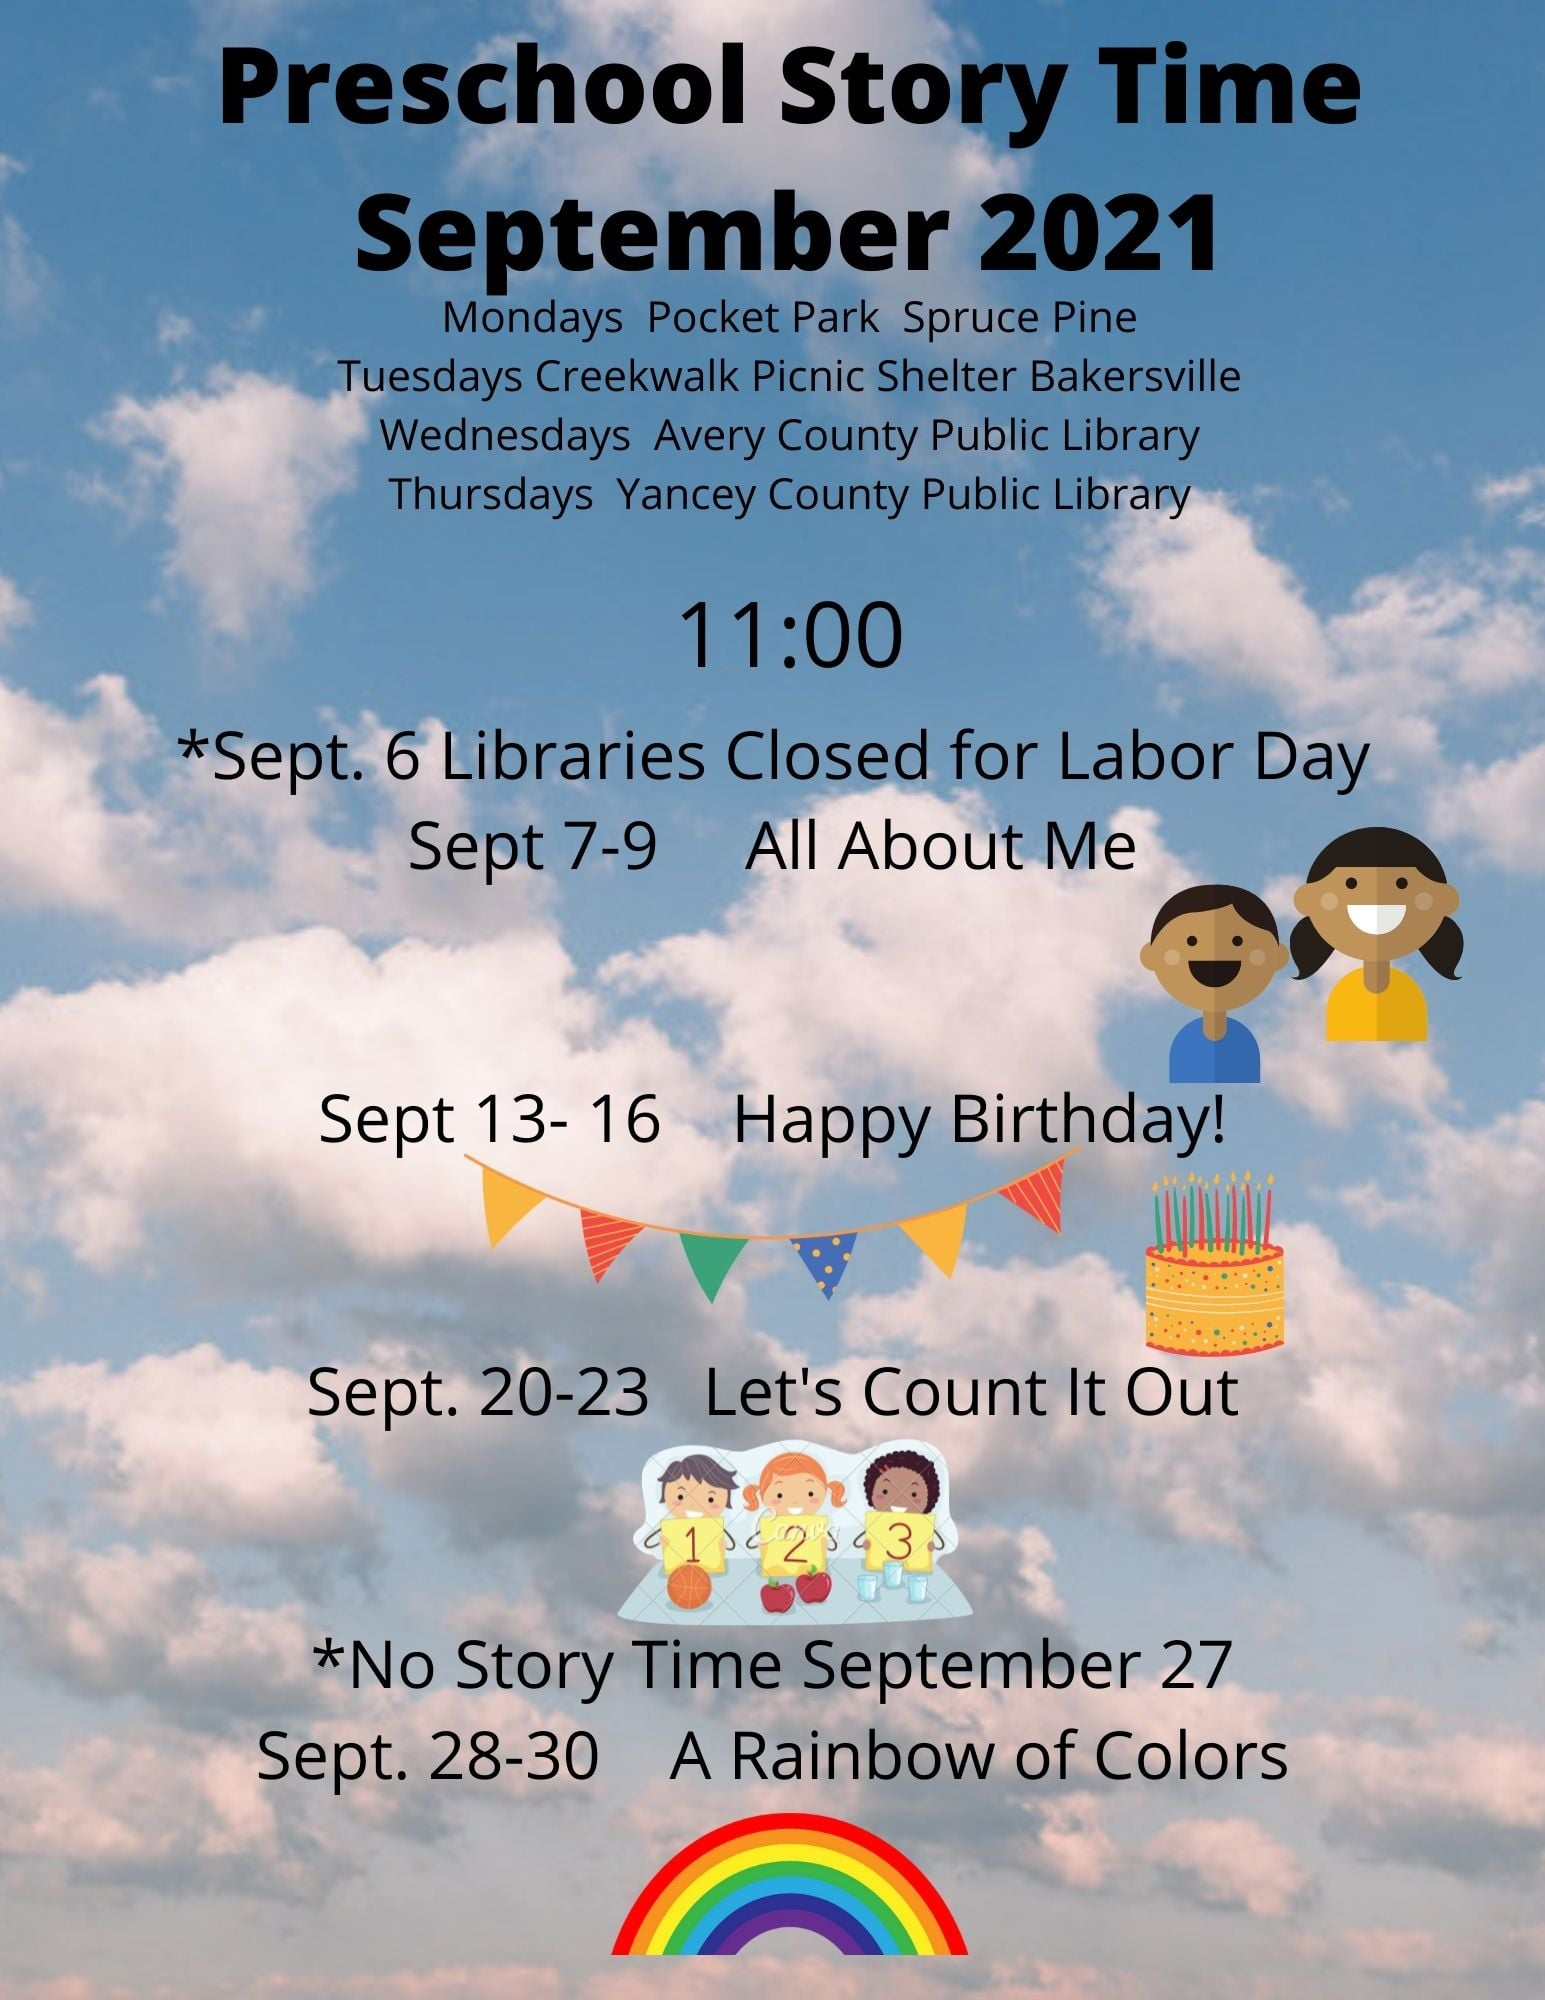 """An image of a blue sky with white clouds and """"Preschool Story Time September 2021"""" written at the top and then followed by calendar information about story times at each library."""